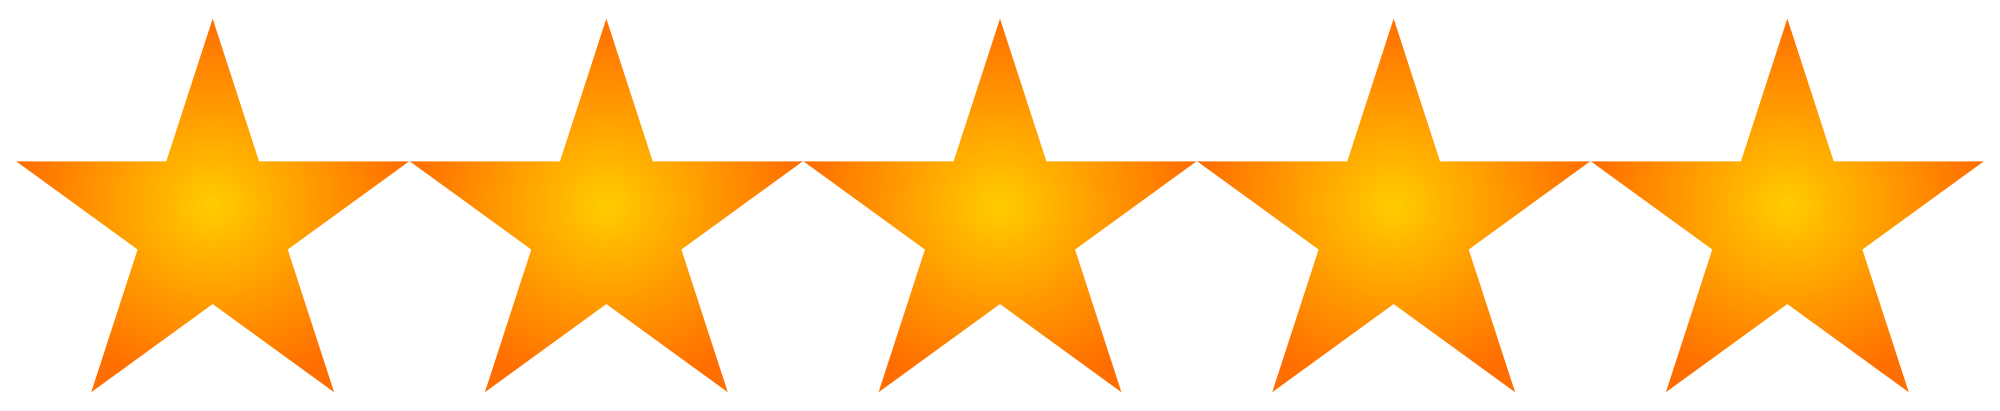 Customer comments pxstarssvgpng. Amazon 5 stars png vector royalty free library